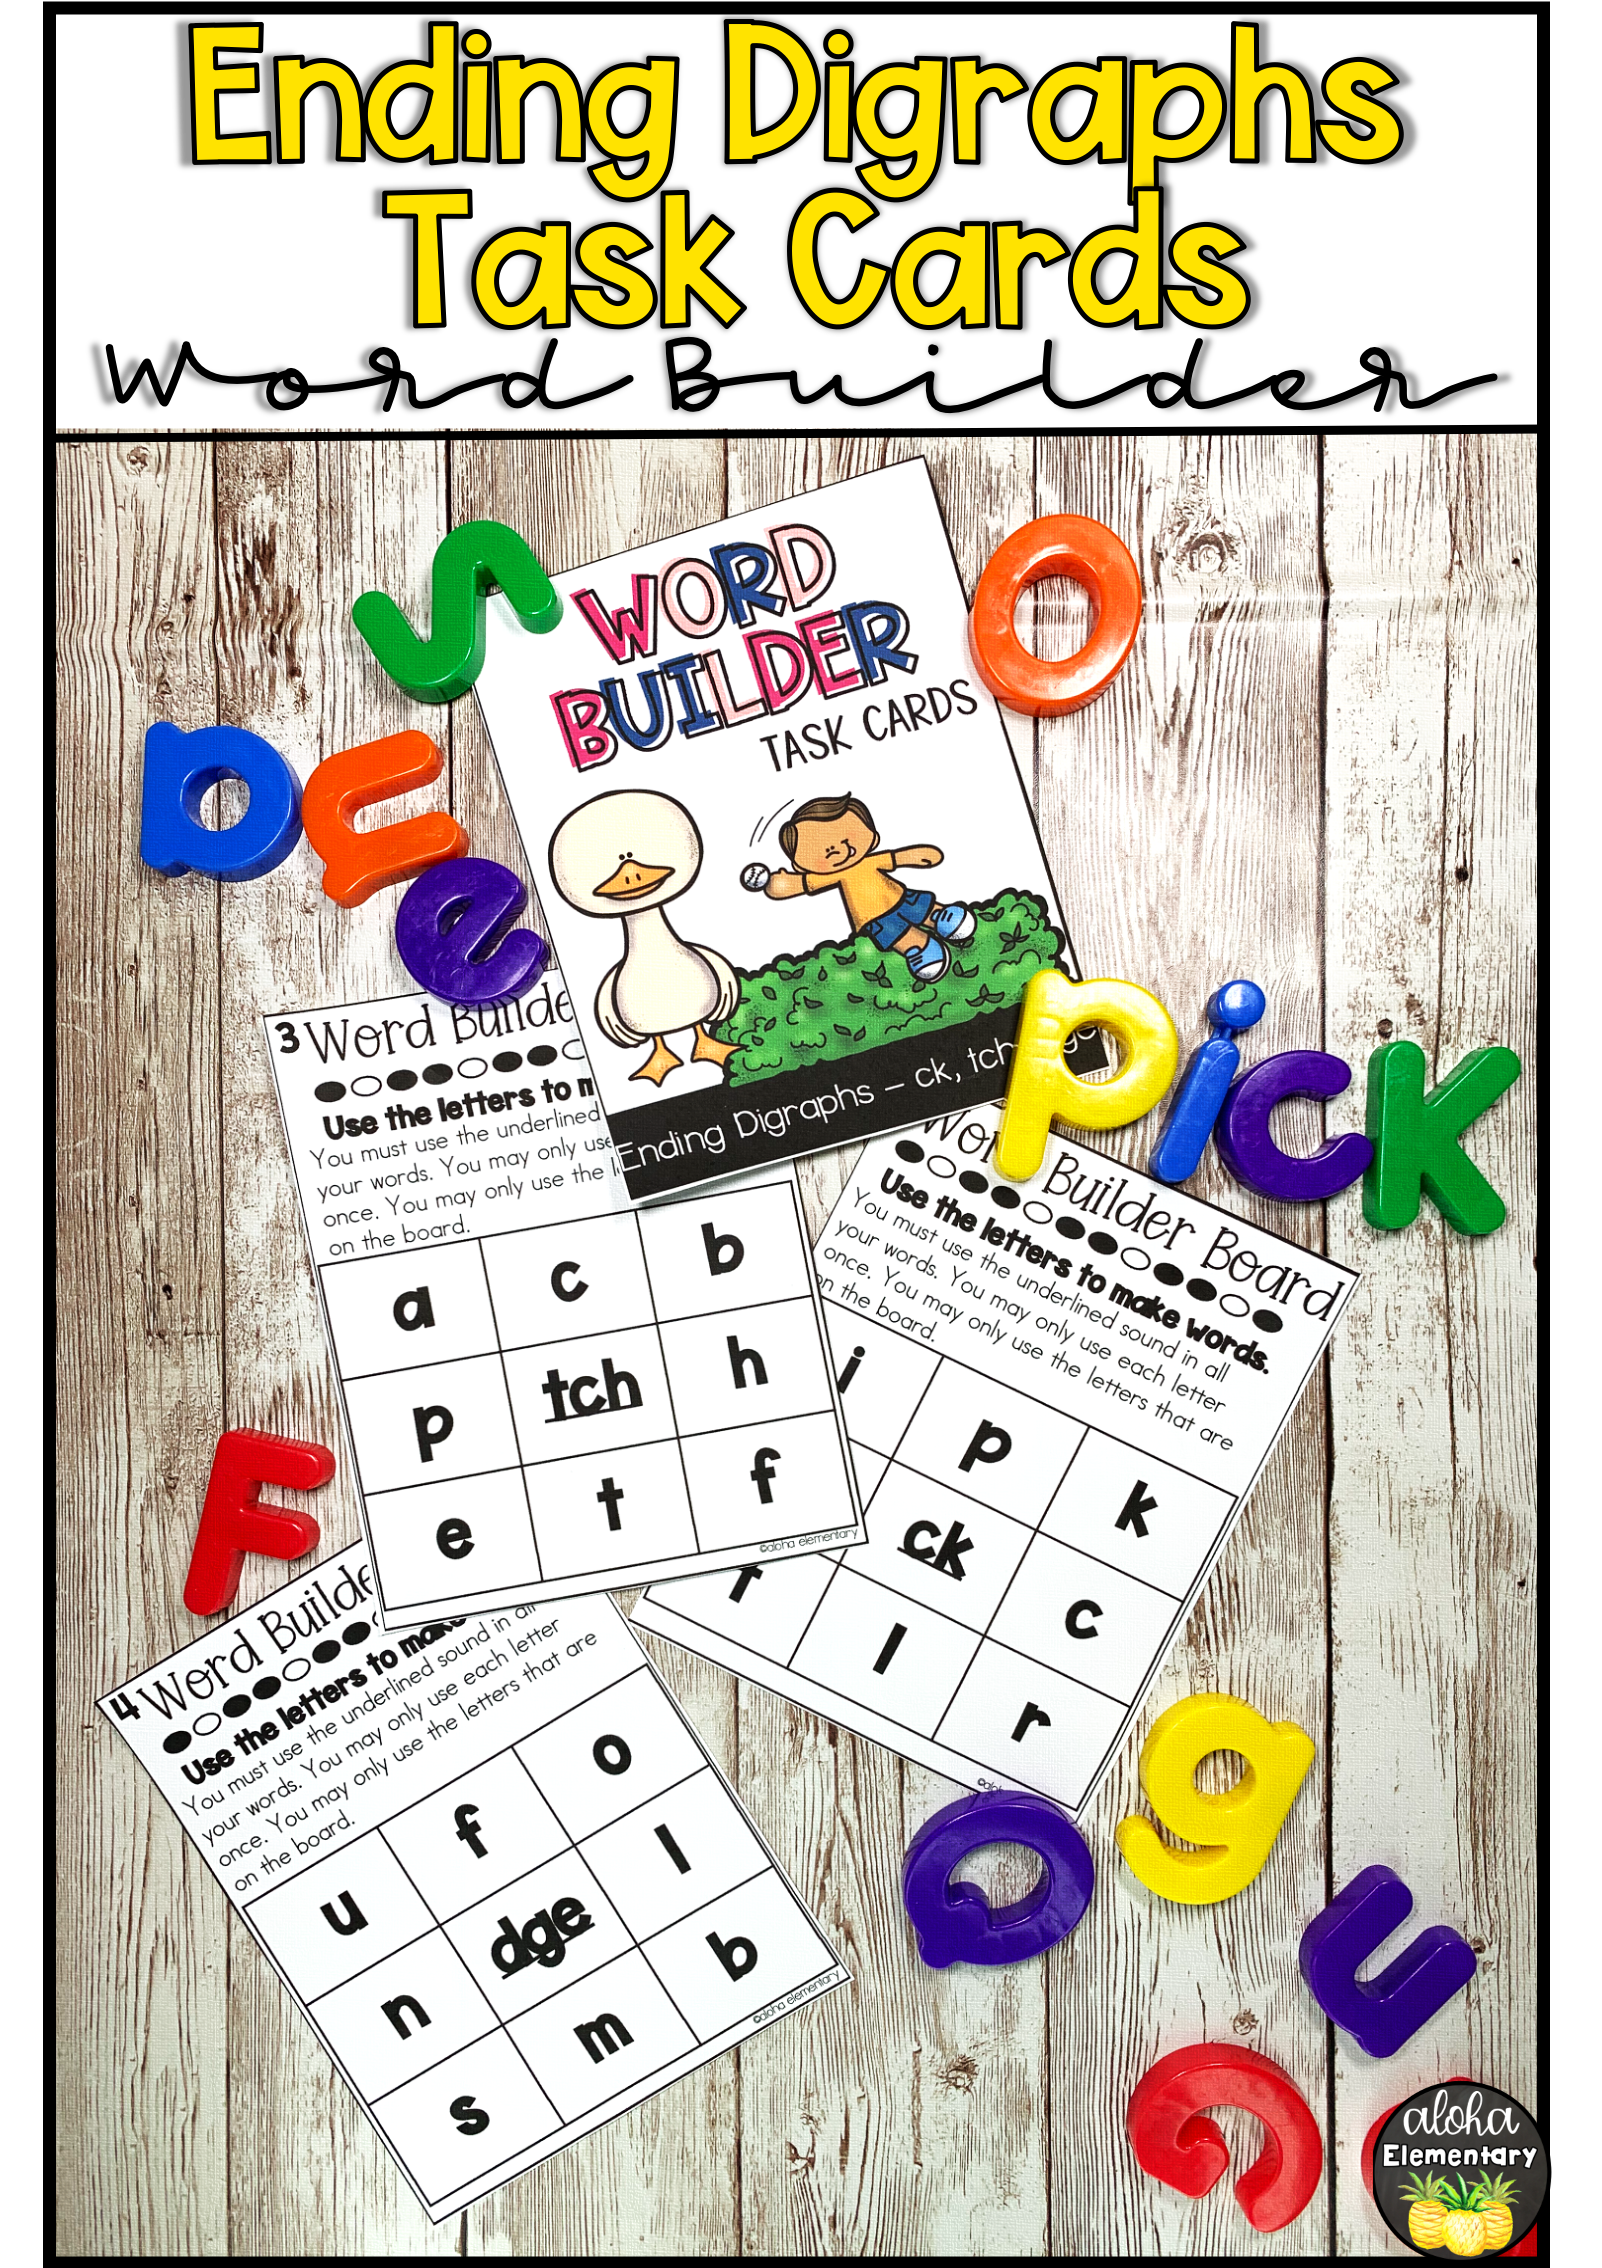 Ending Digraphs And Trigraphs Ck Tch Dge Word Building